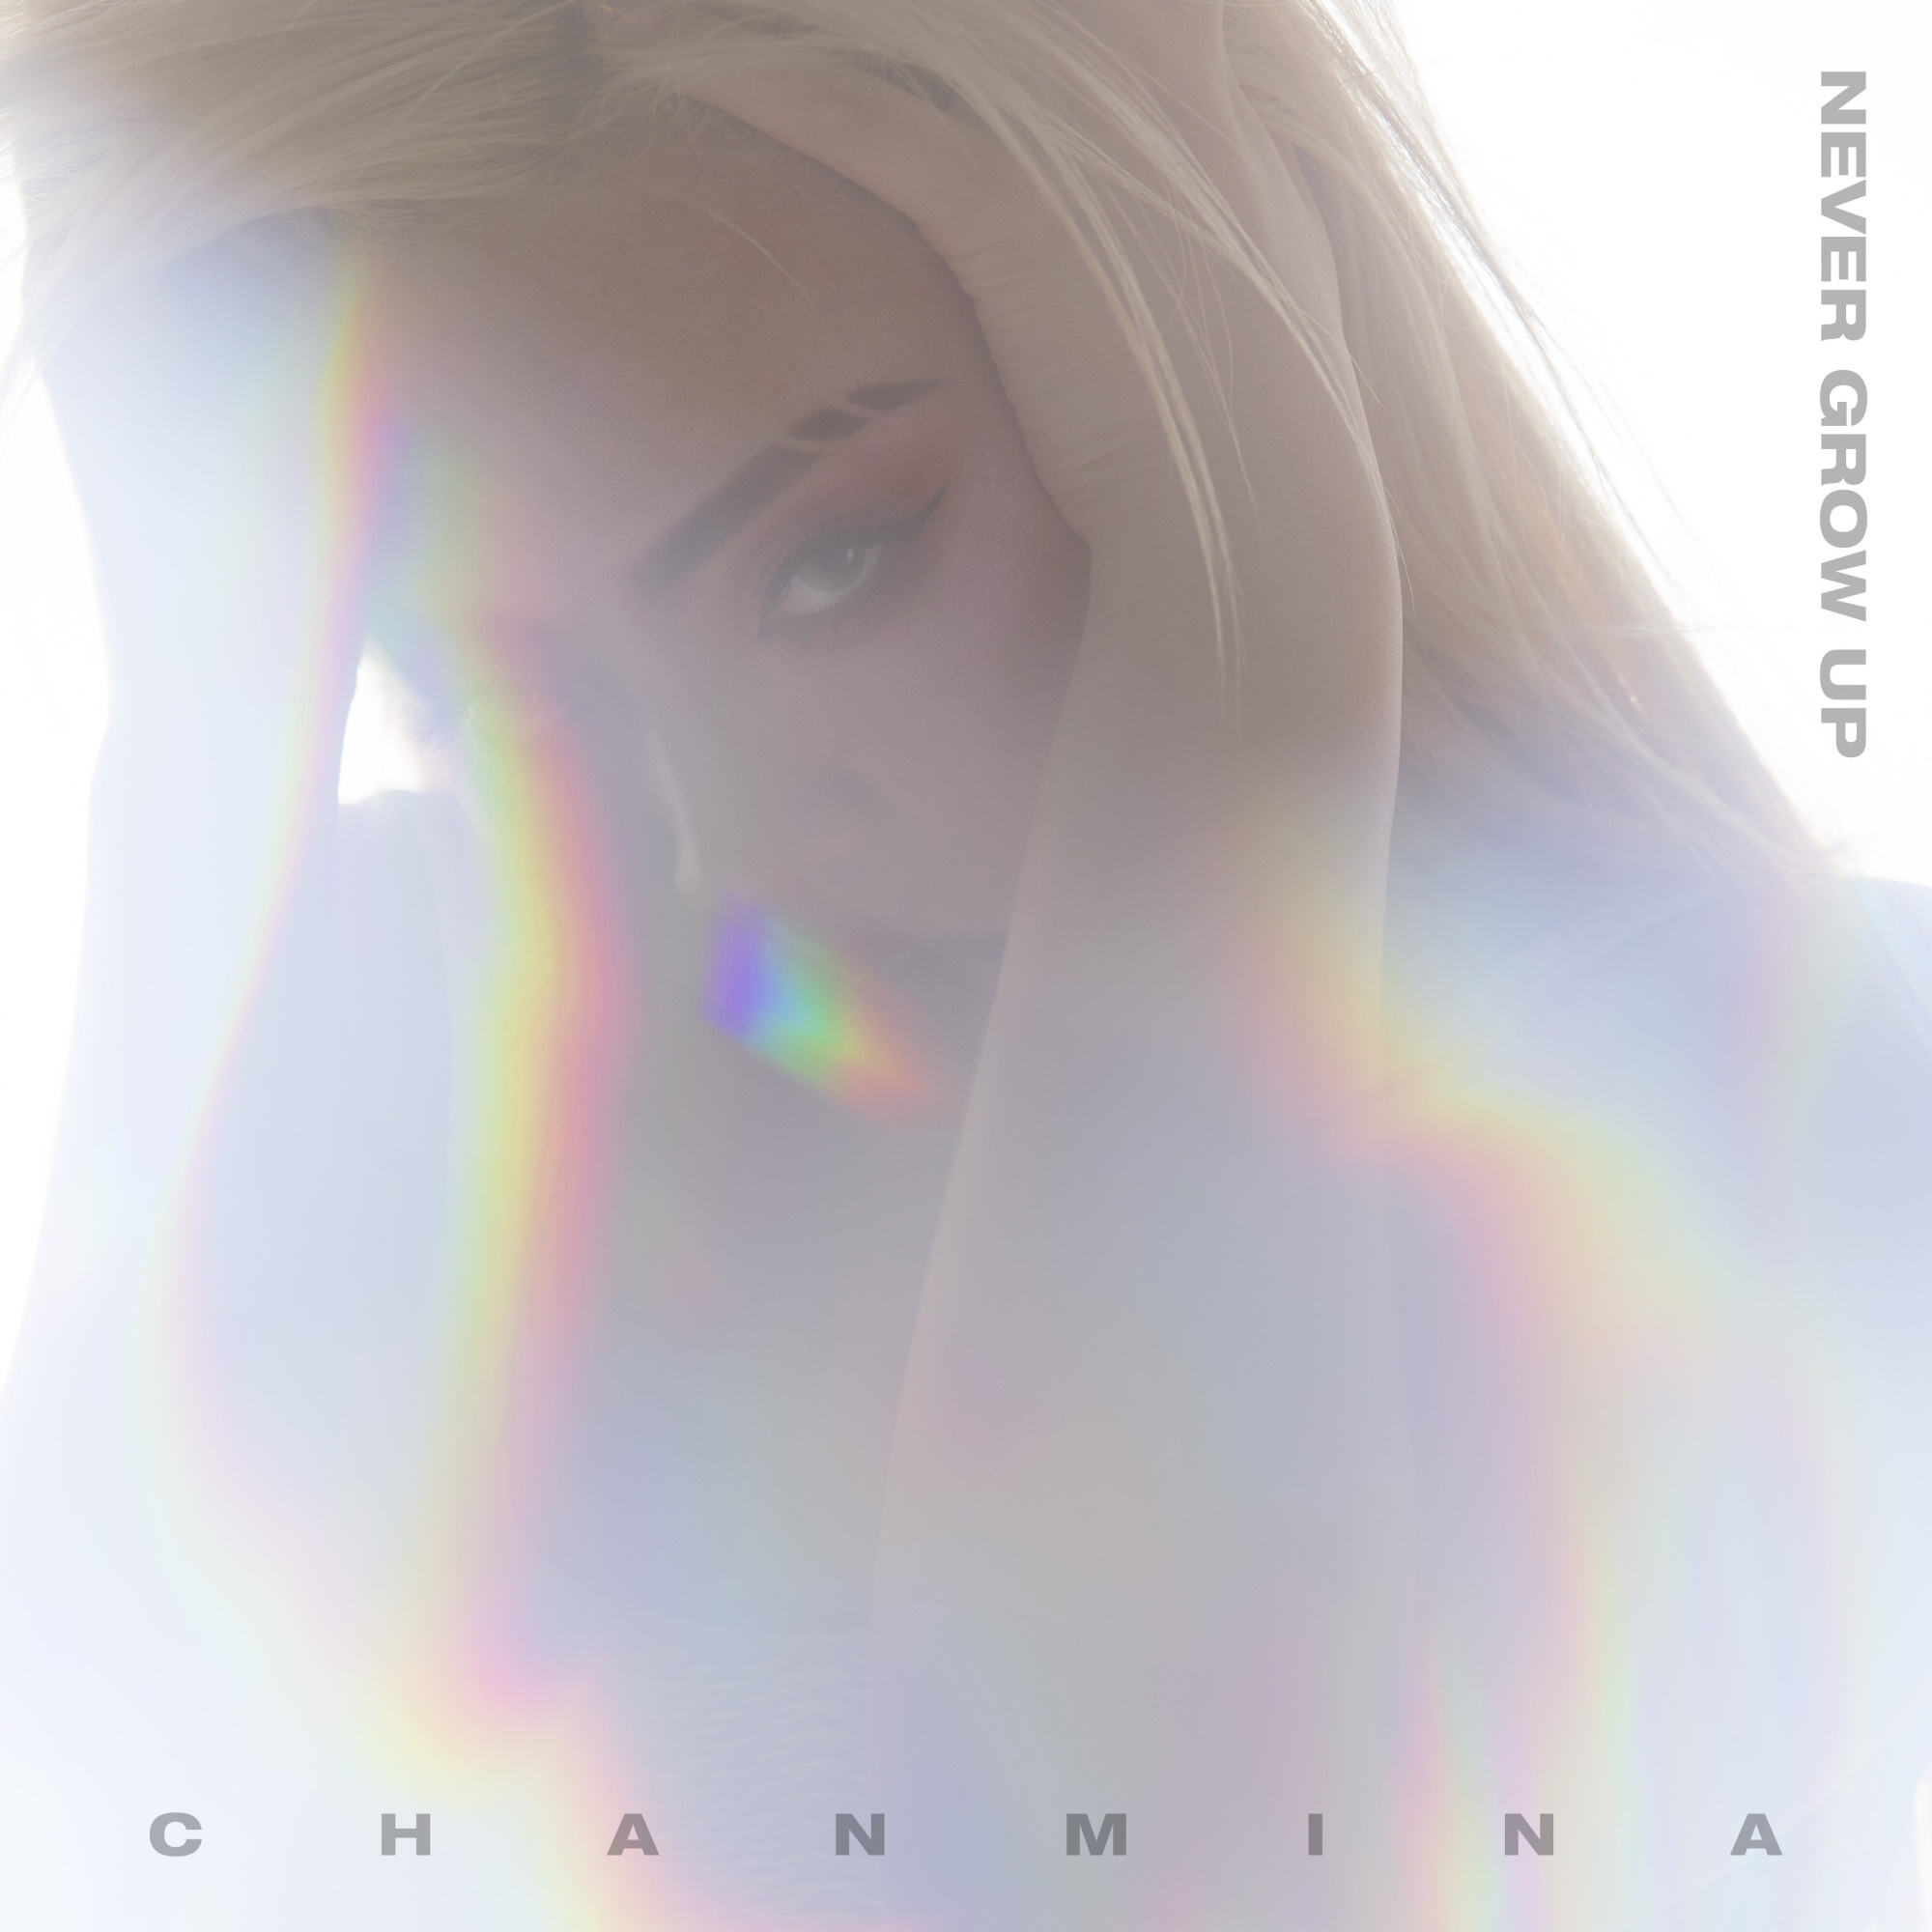 Staying young: Chanmina gets slicker without ditching the swagger on her second album, 'Never Grow Up.'